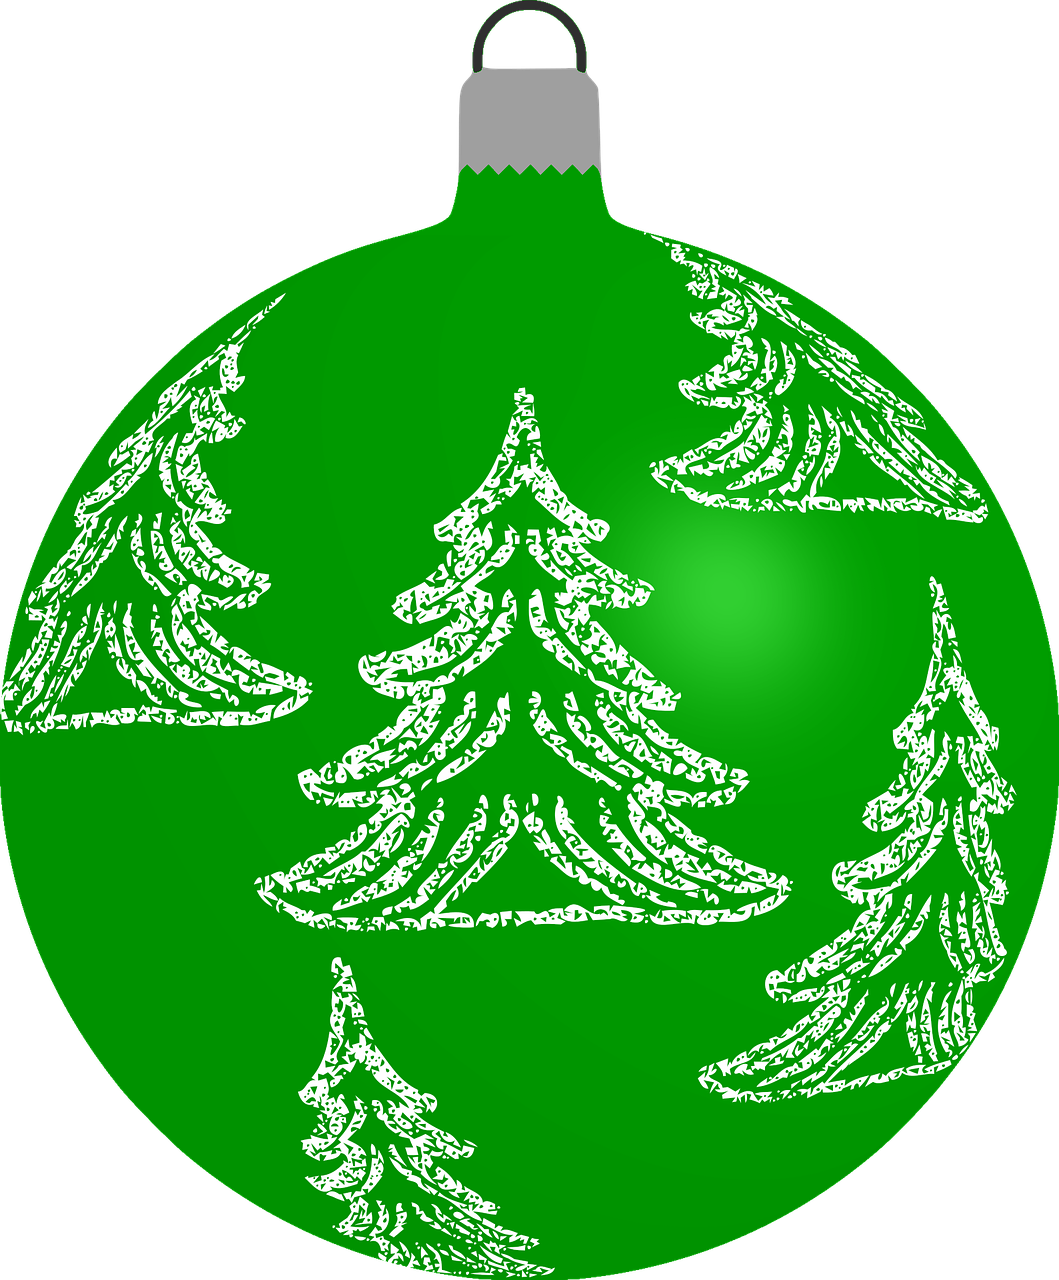 how to draw a Christmas ball, bauble